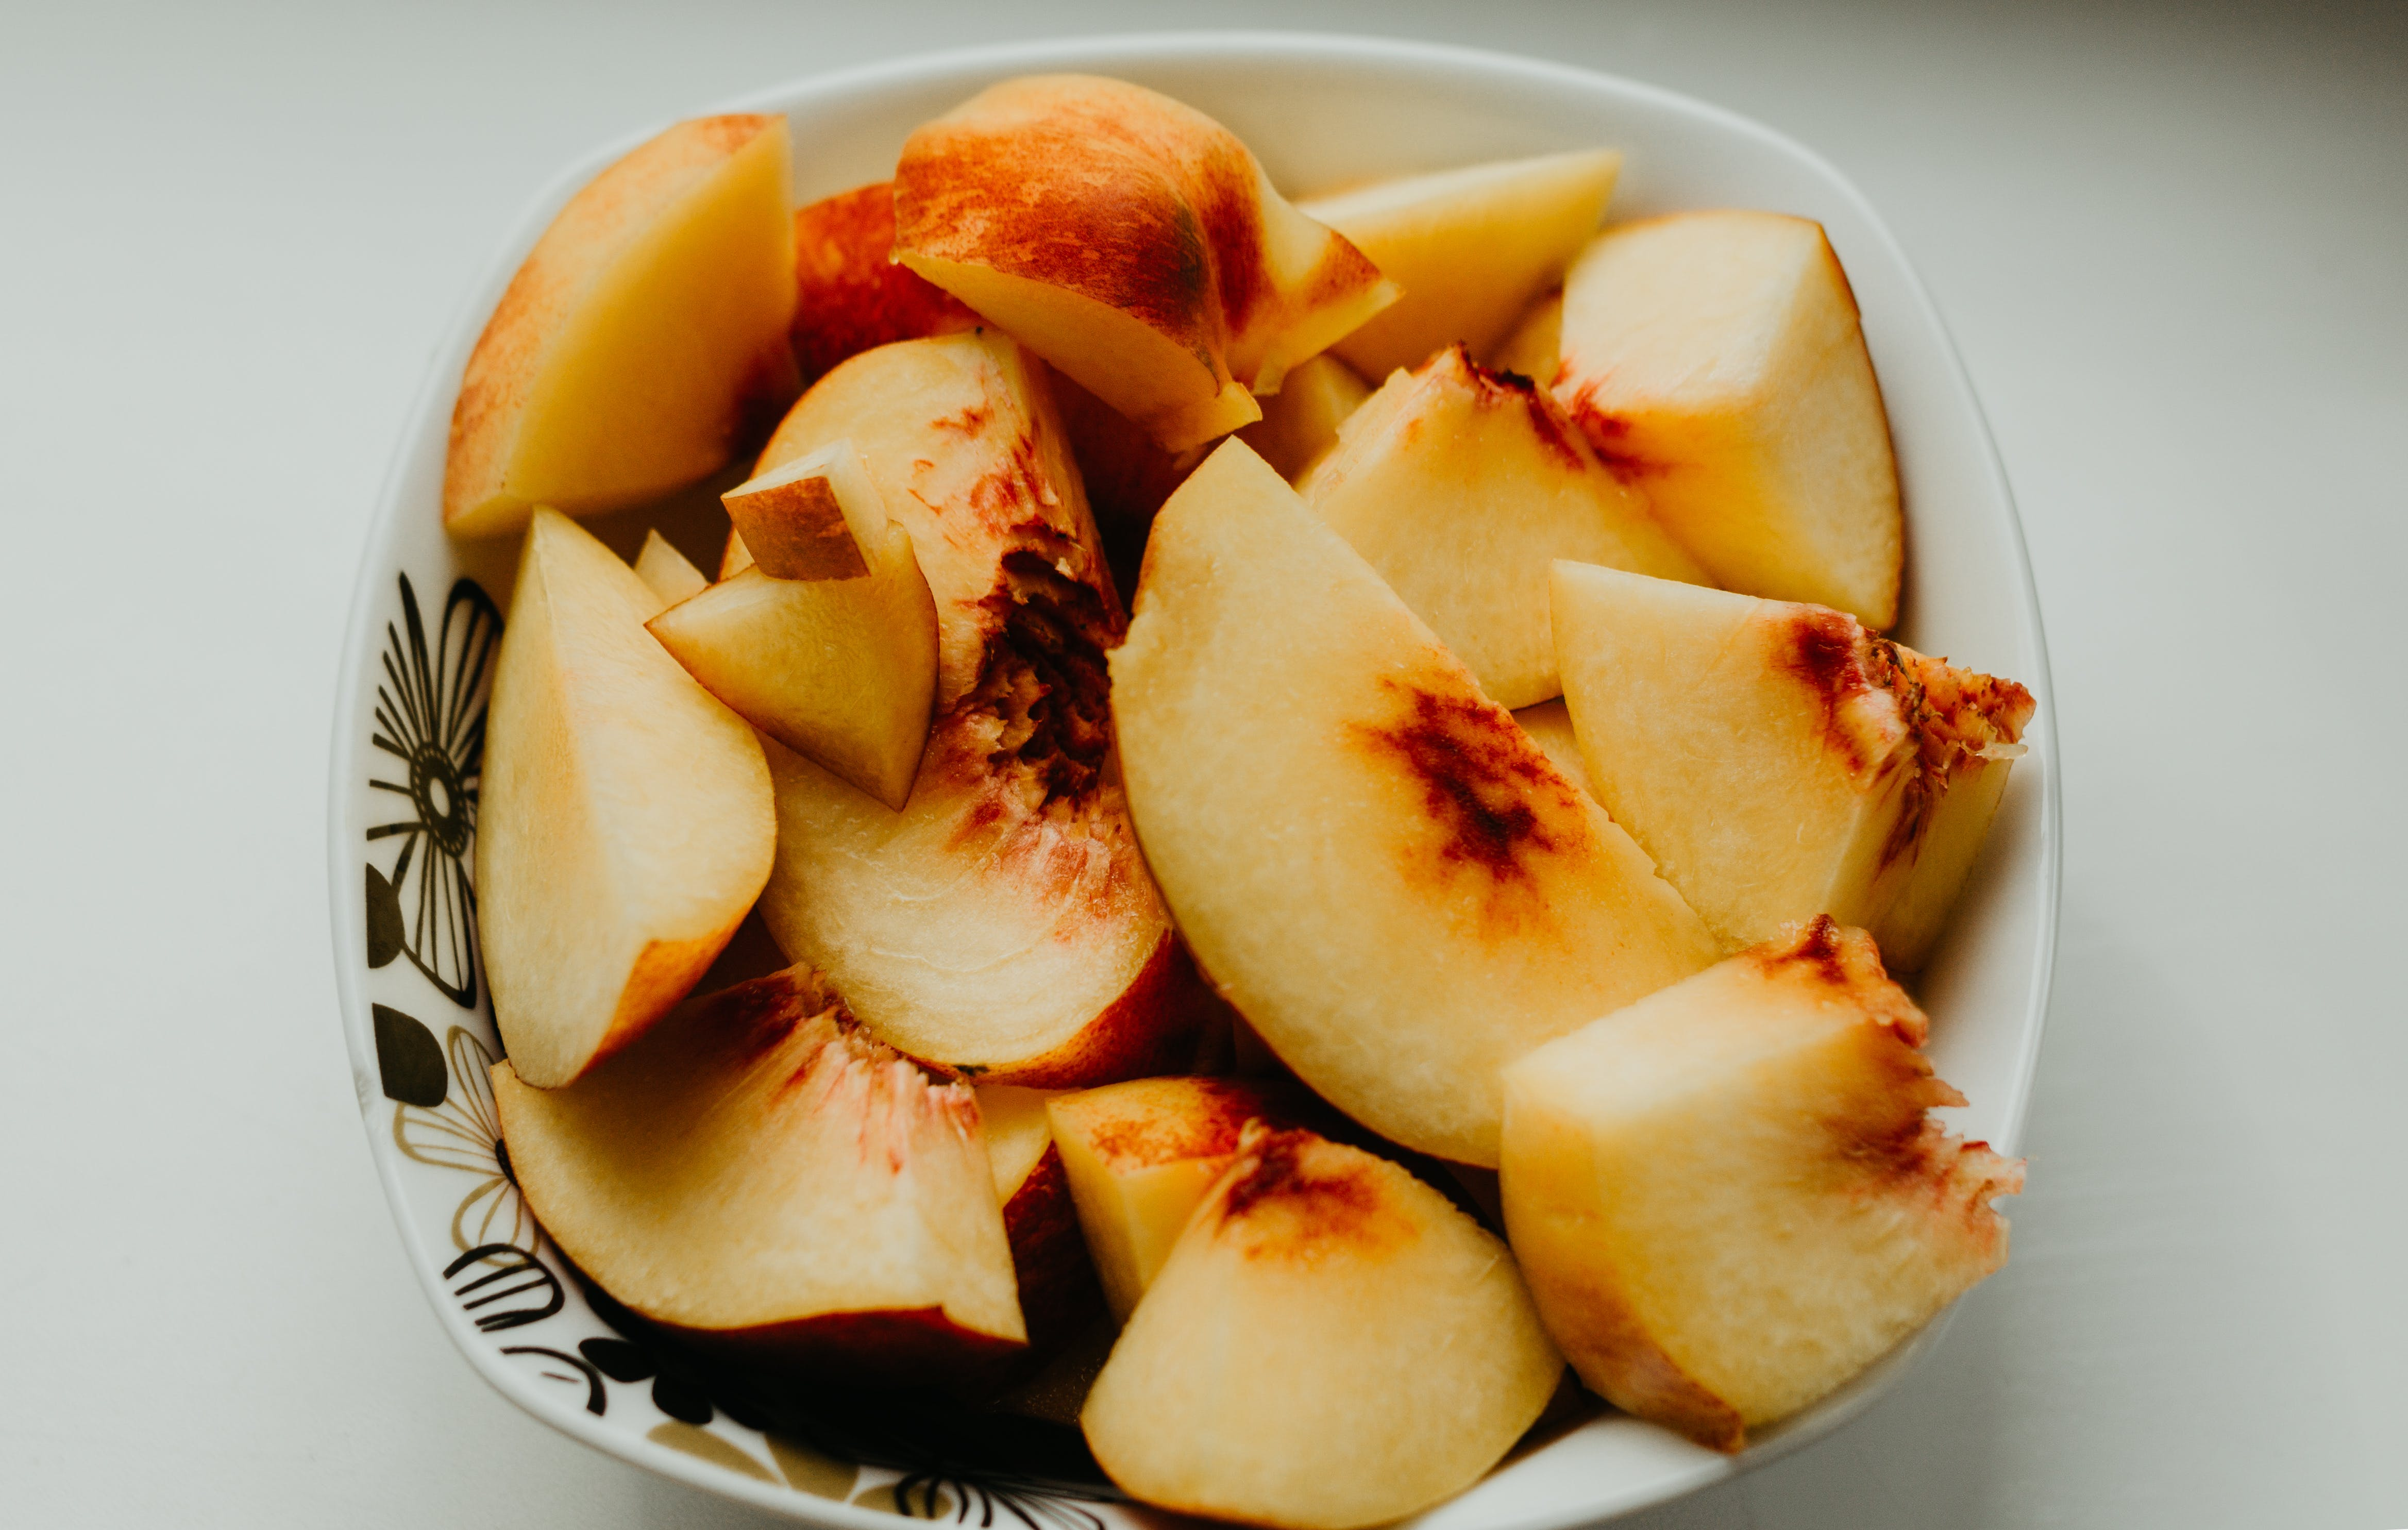 Sliced Apples on White Ceramic Bowl